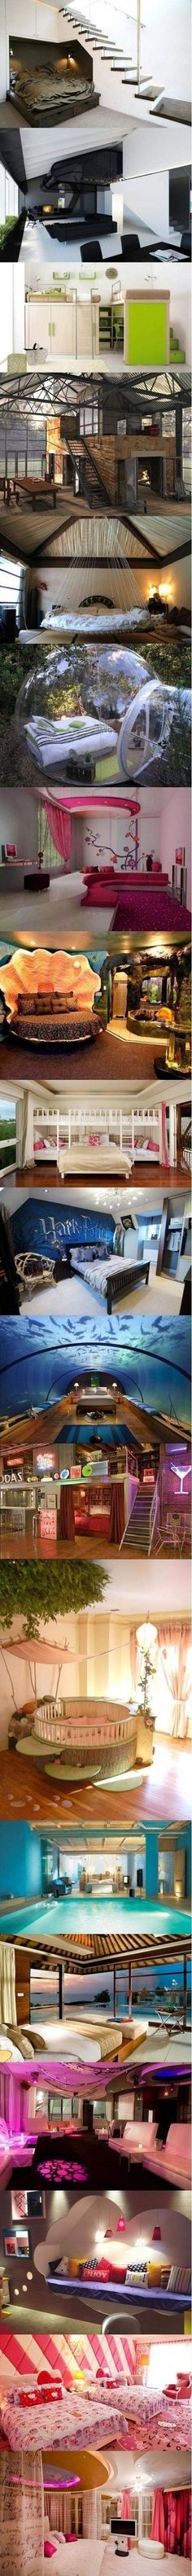 Great ideas for a bedroom...now to choose ???